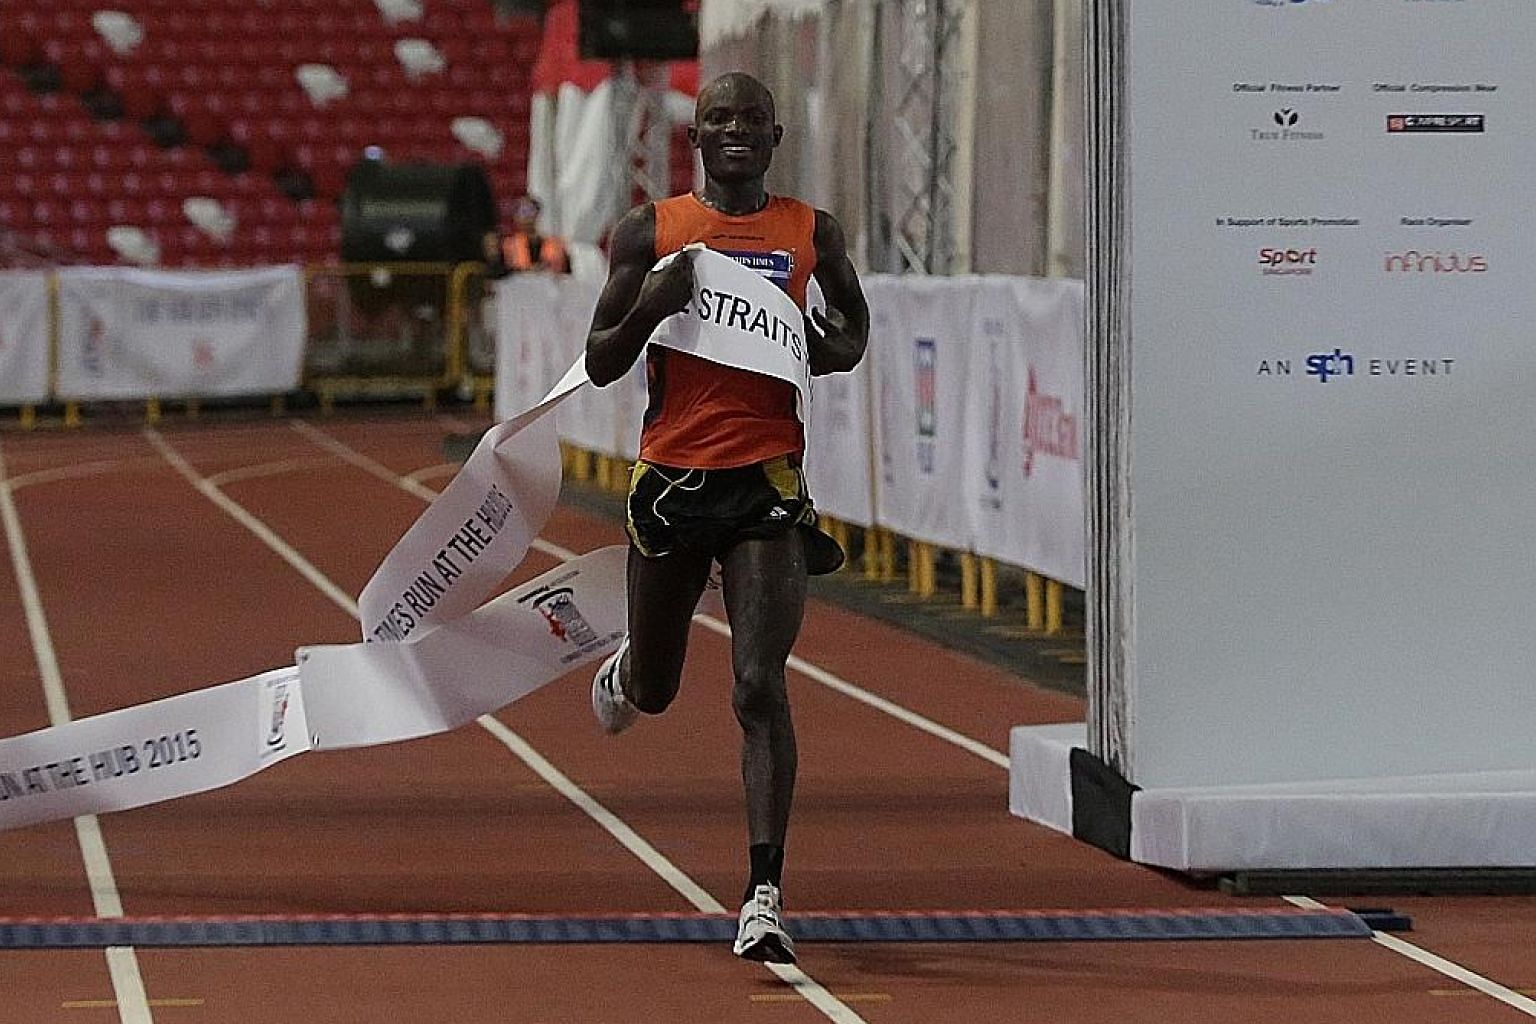 Kenyan David Kibet crossing the finish line for the men's 18.45km race at the National Stadium yesterday. This was the 27-year-old's first race in Singapore.